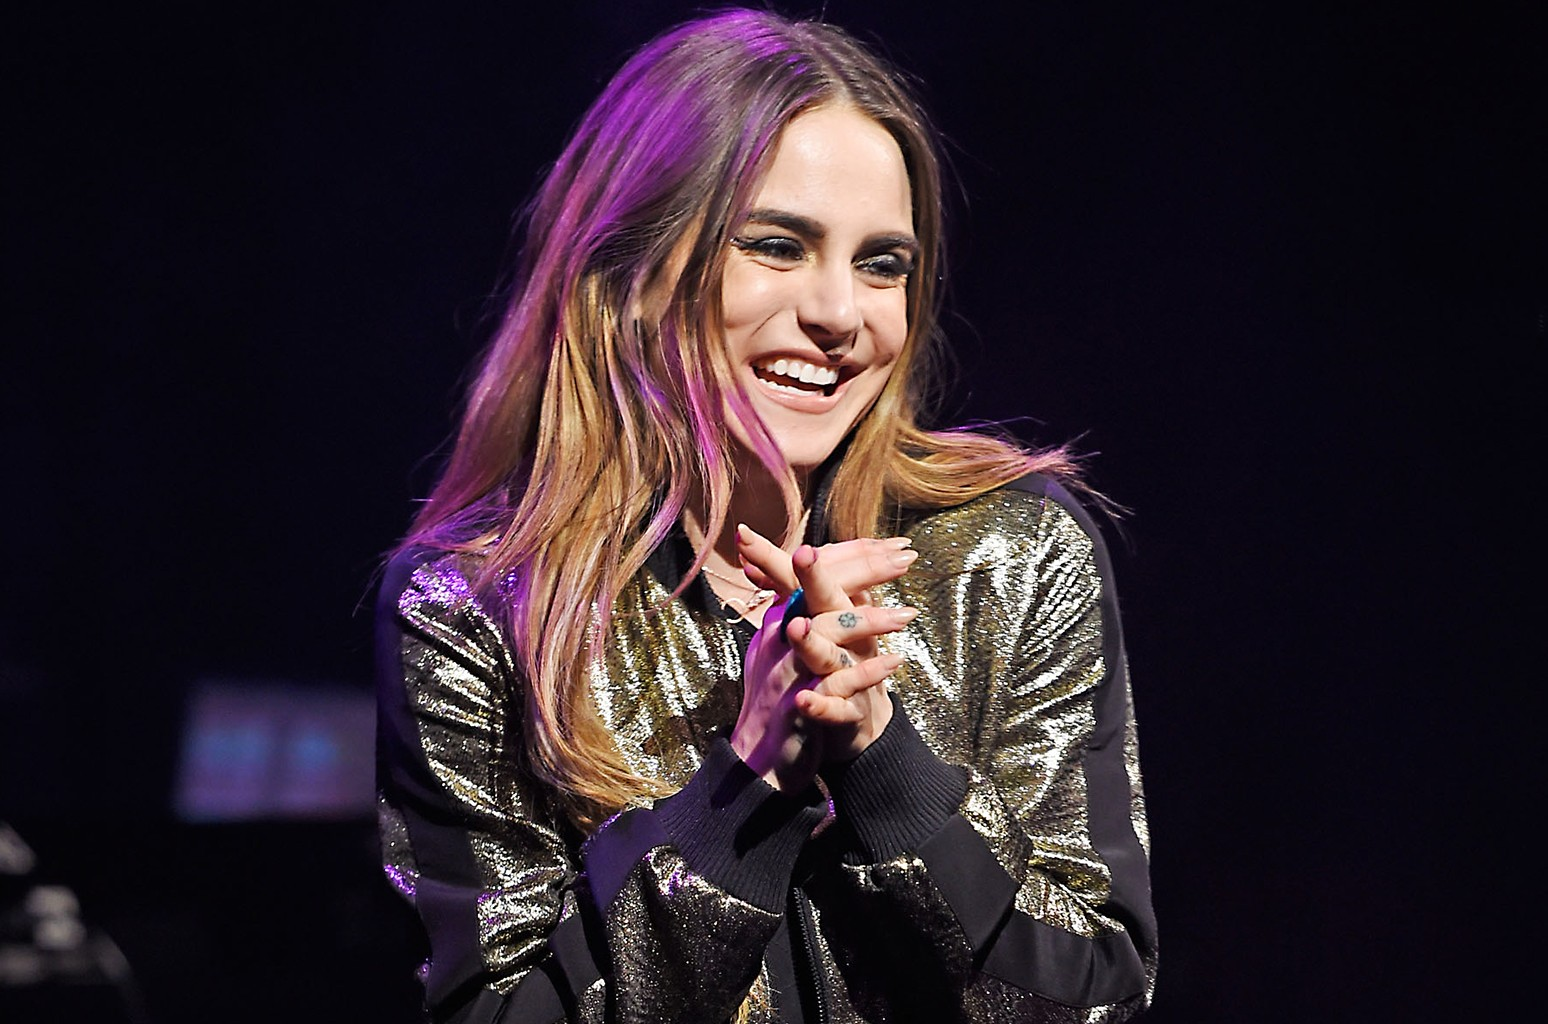 JoJo performs at Headliners Music Hall on April 1, 2017 in Louisville, Ky.